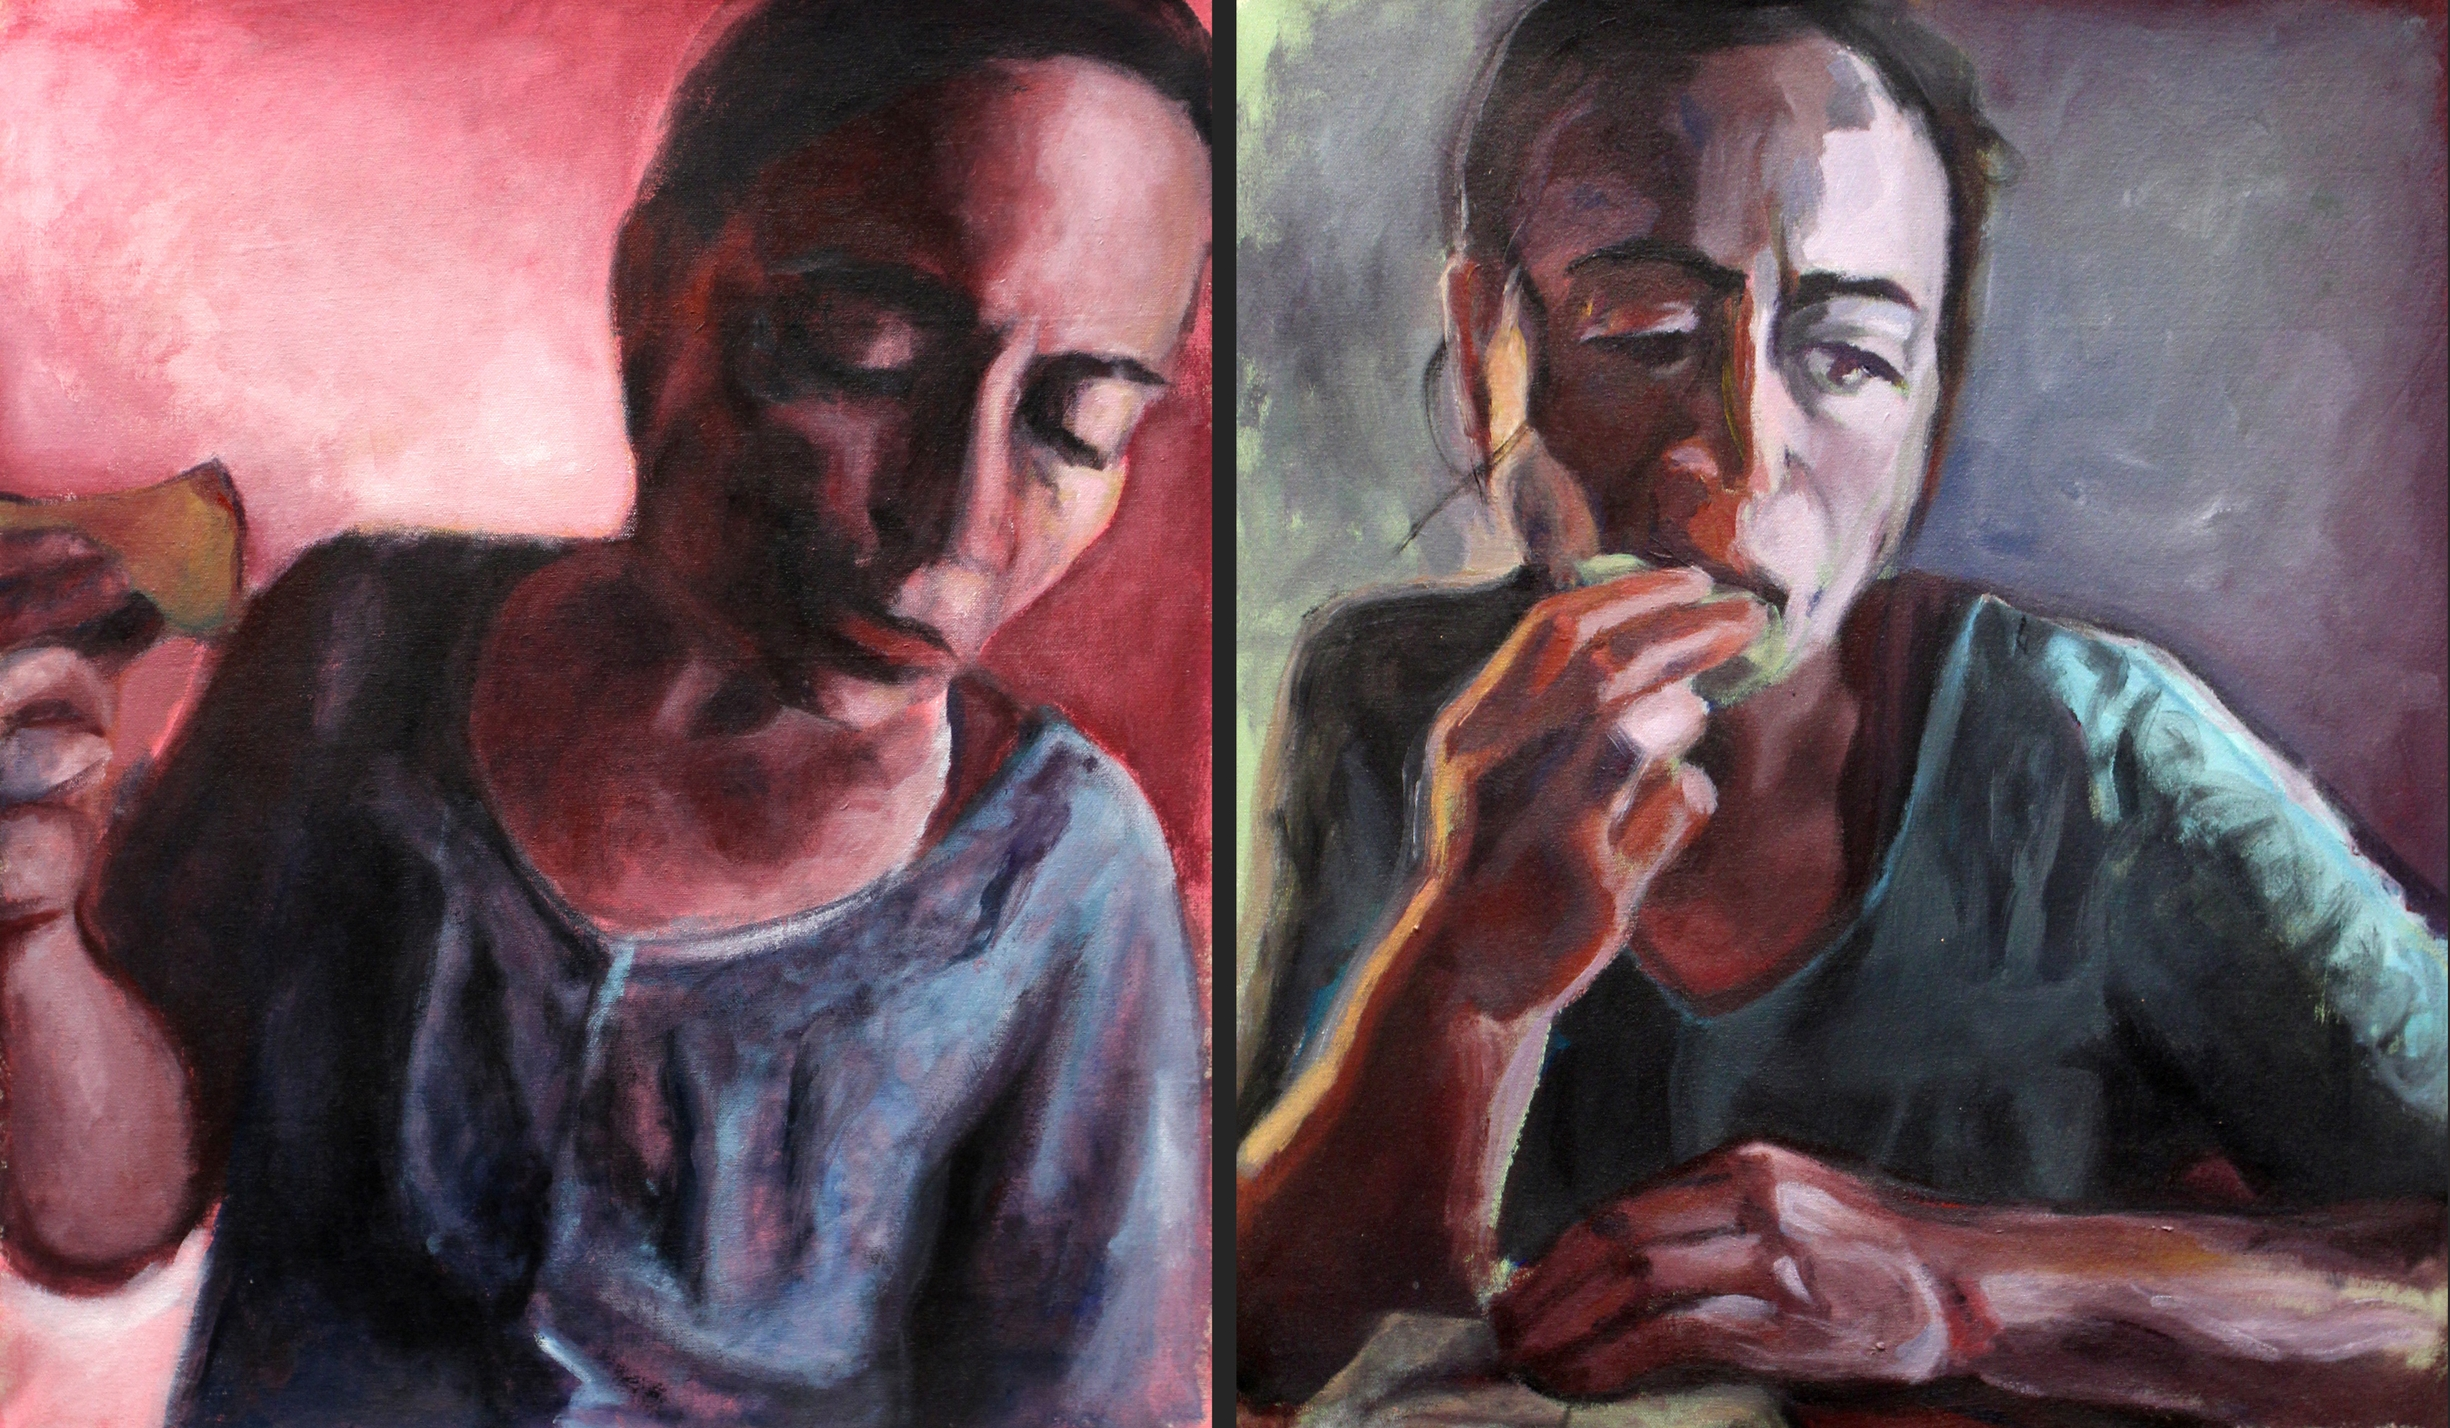 Mom Diptych © 2015 Zoe Hall